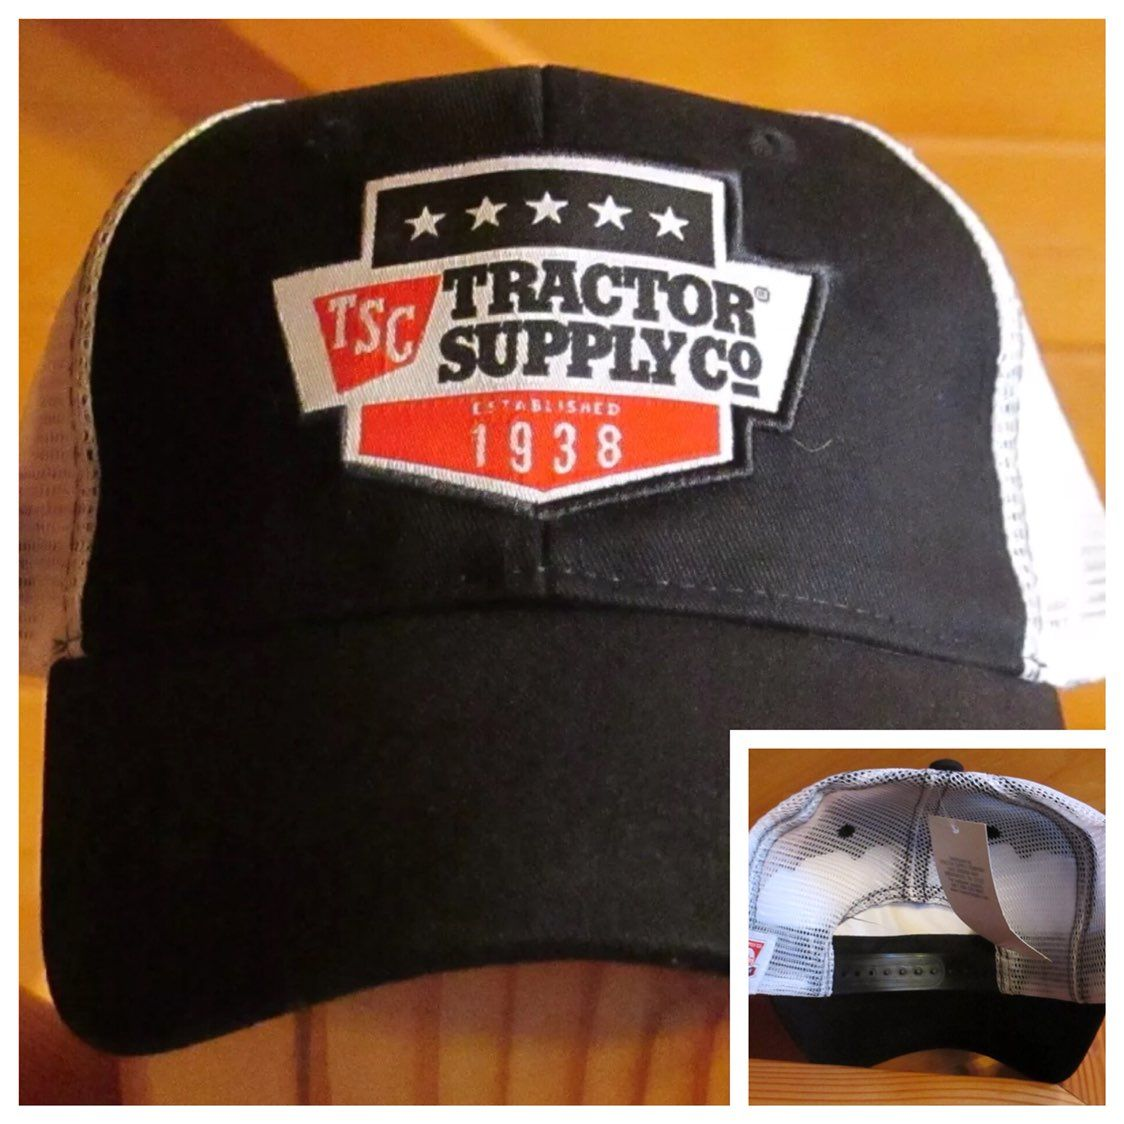 bbb73e01886 Tractor Supply Company SnapBack Hat Cap - Mercari: The Selling App #farming  #tractor #cap #hat #accessories #clothes